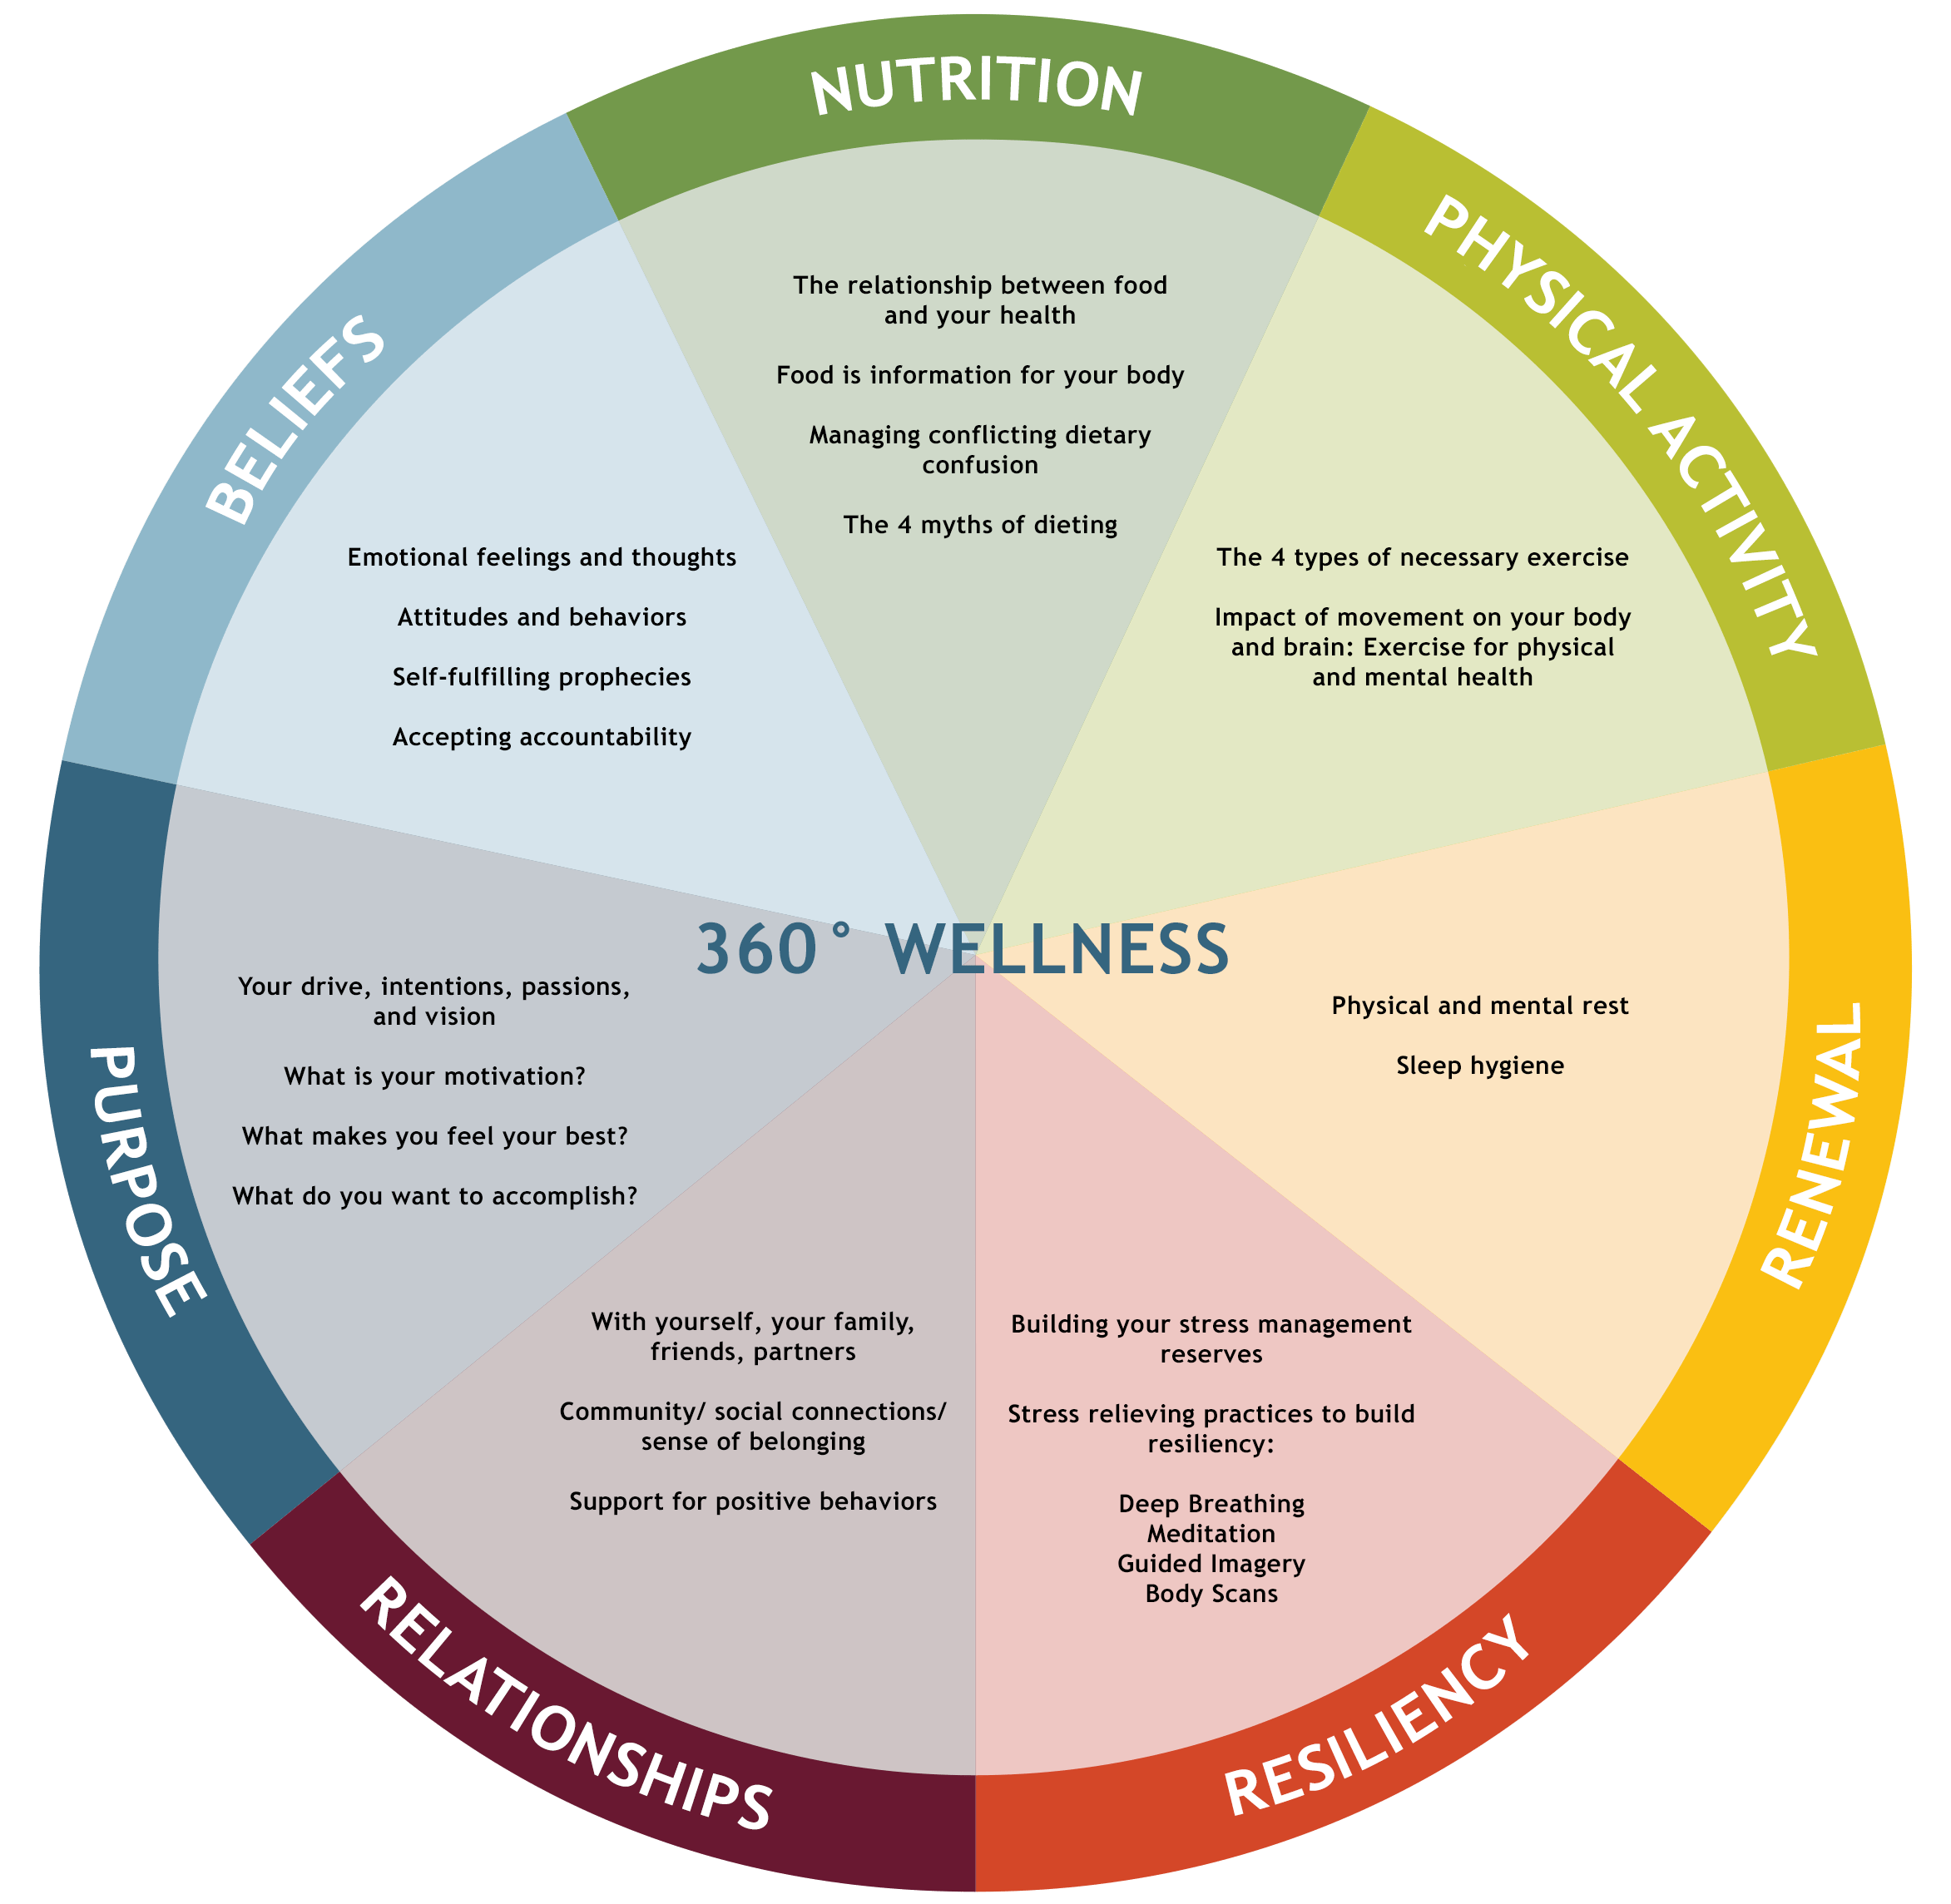 My Approach To Health Amp Wellness